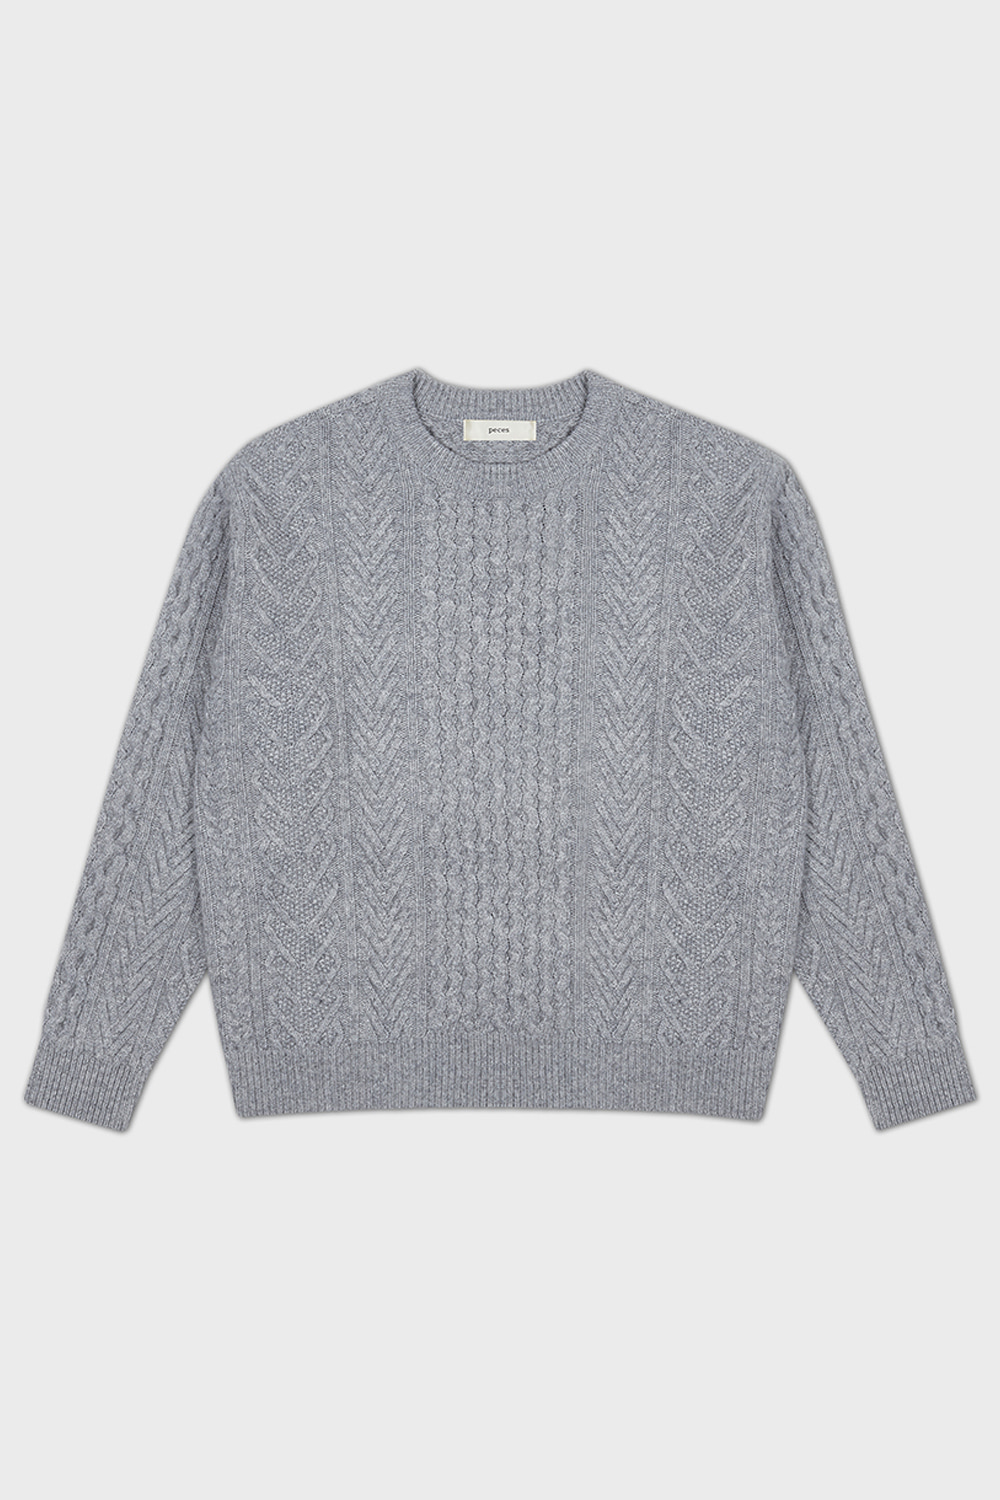 WOOL CABLE KNIT (LM/GRAY)